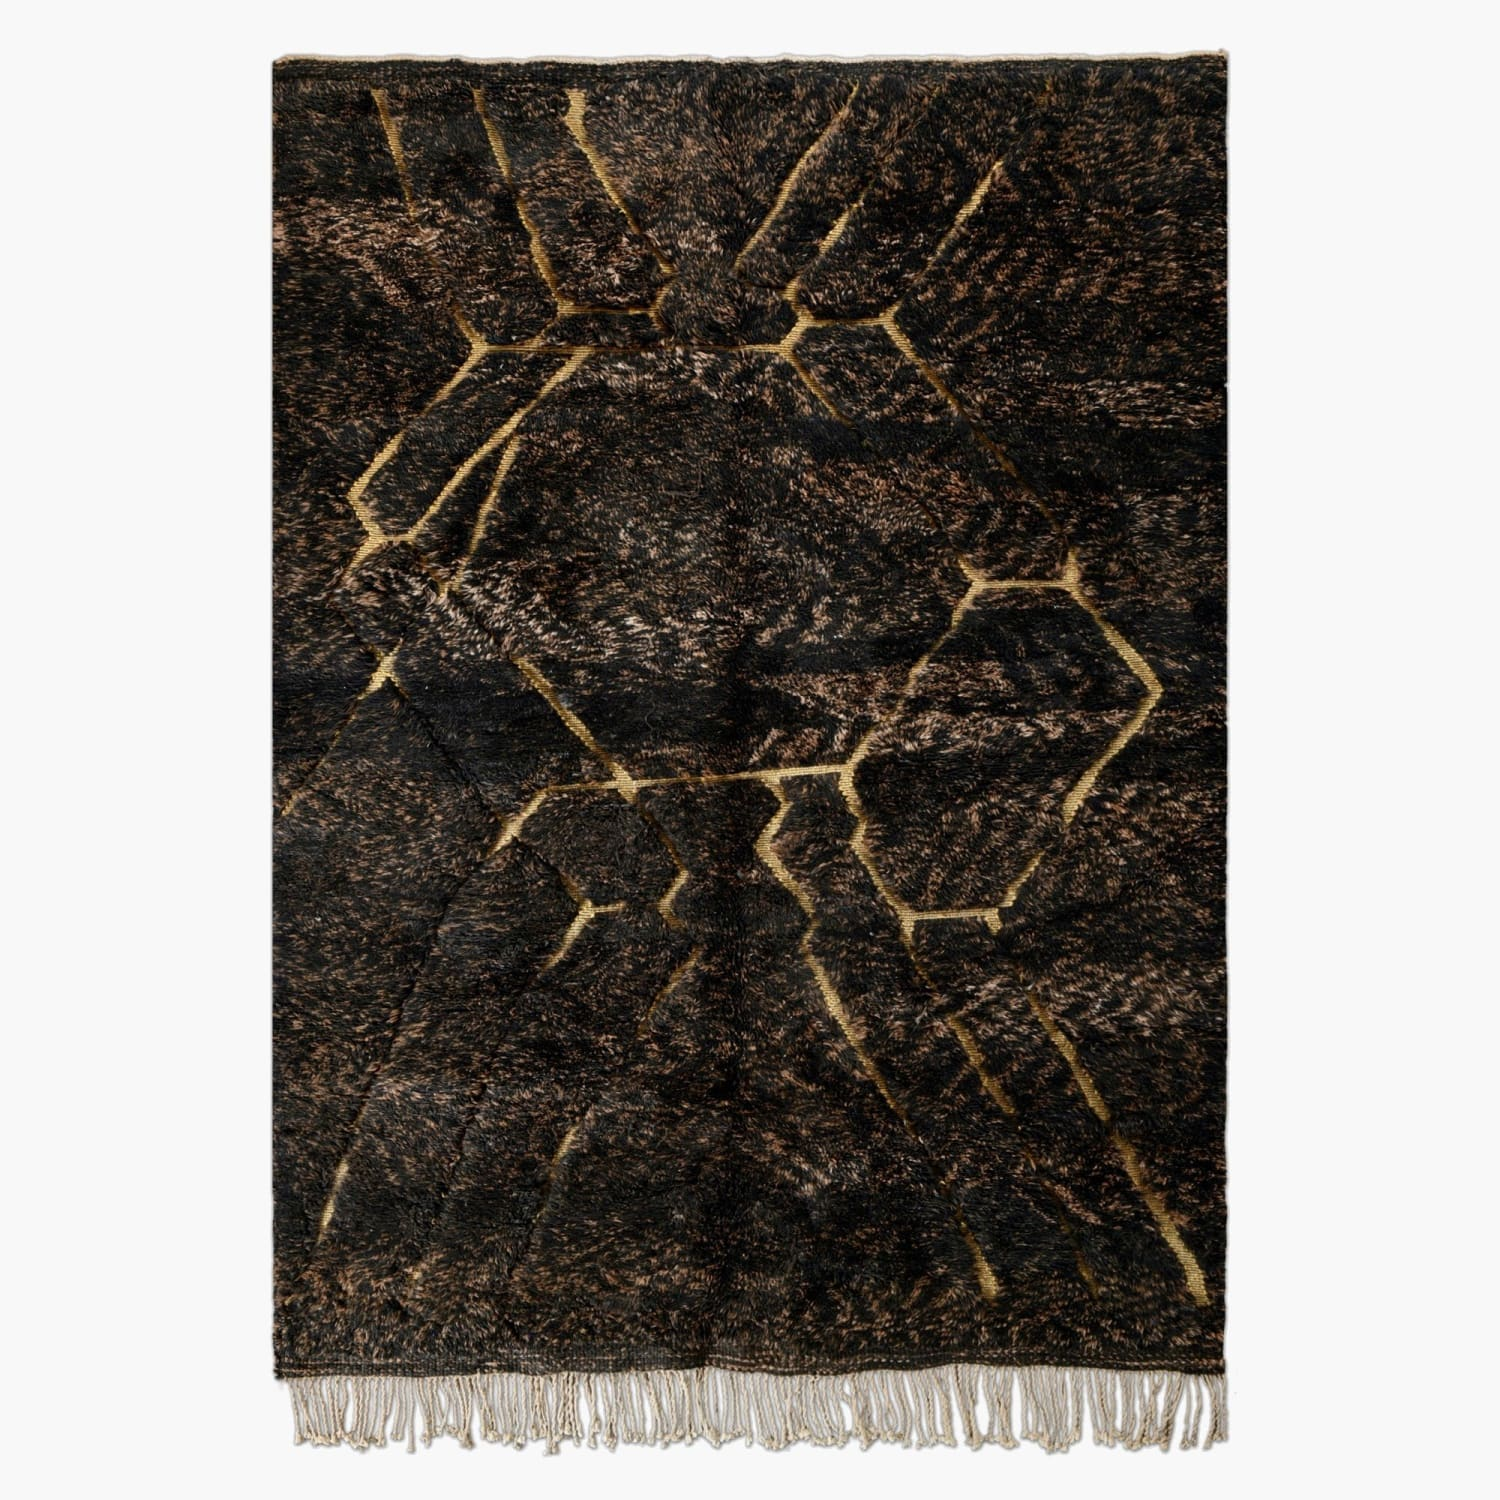 "Gold Rush - Luxury Mrirt Rug ""Exclusive"" - BENISOUK"